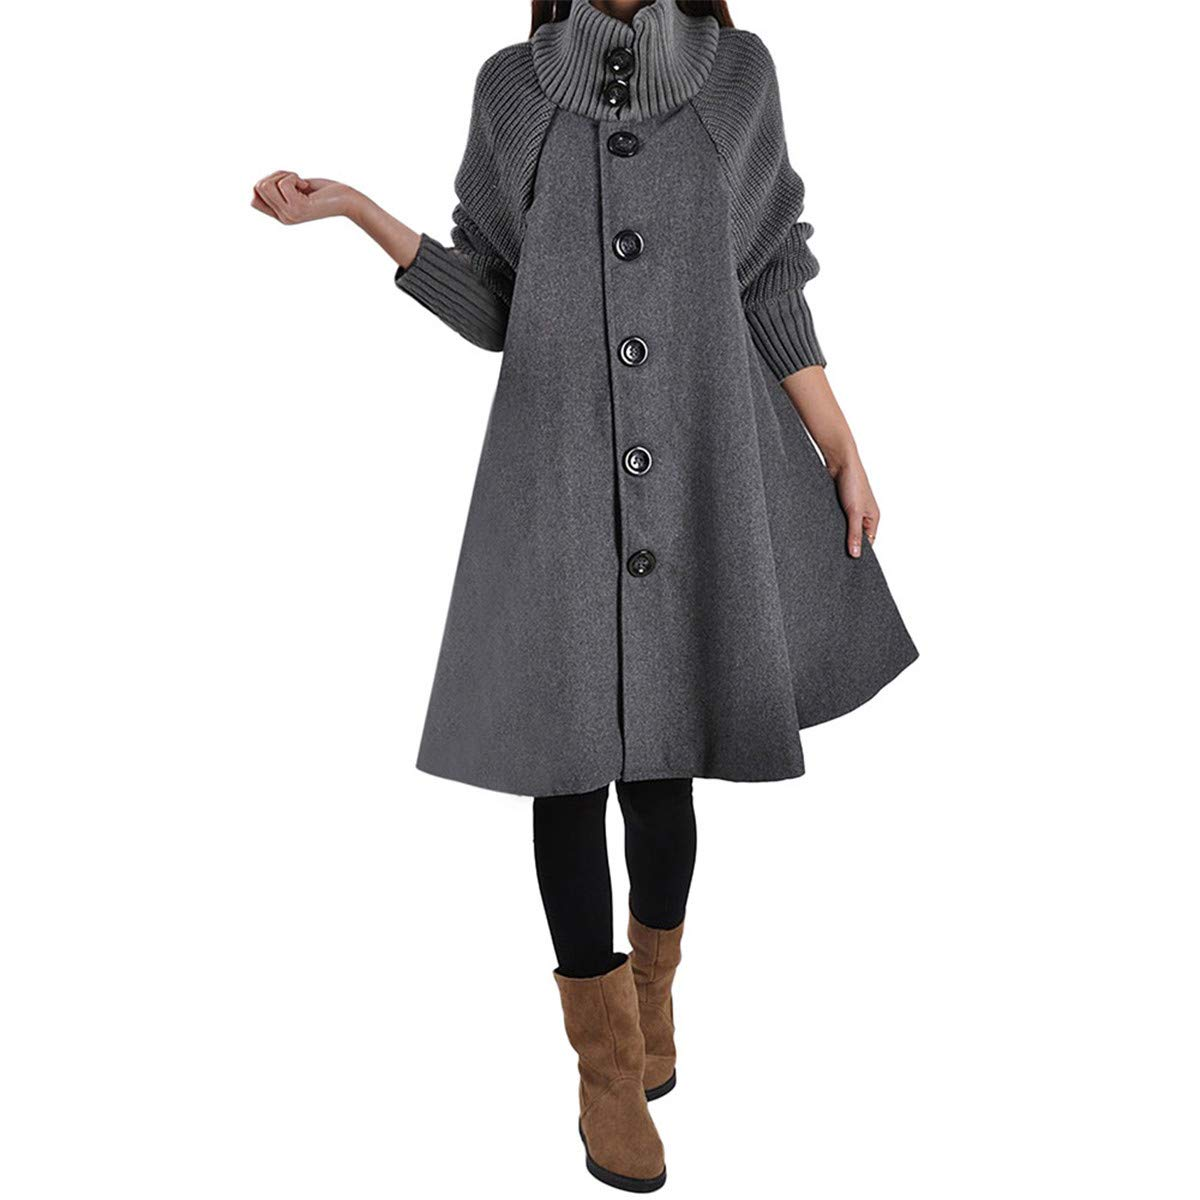 Thenxin Women's Stylish Cloak Overcoat Turtleneck Long Sleeve Loose Single Breasted Dress Outwear(Gray,M) by Thenxin